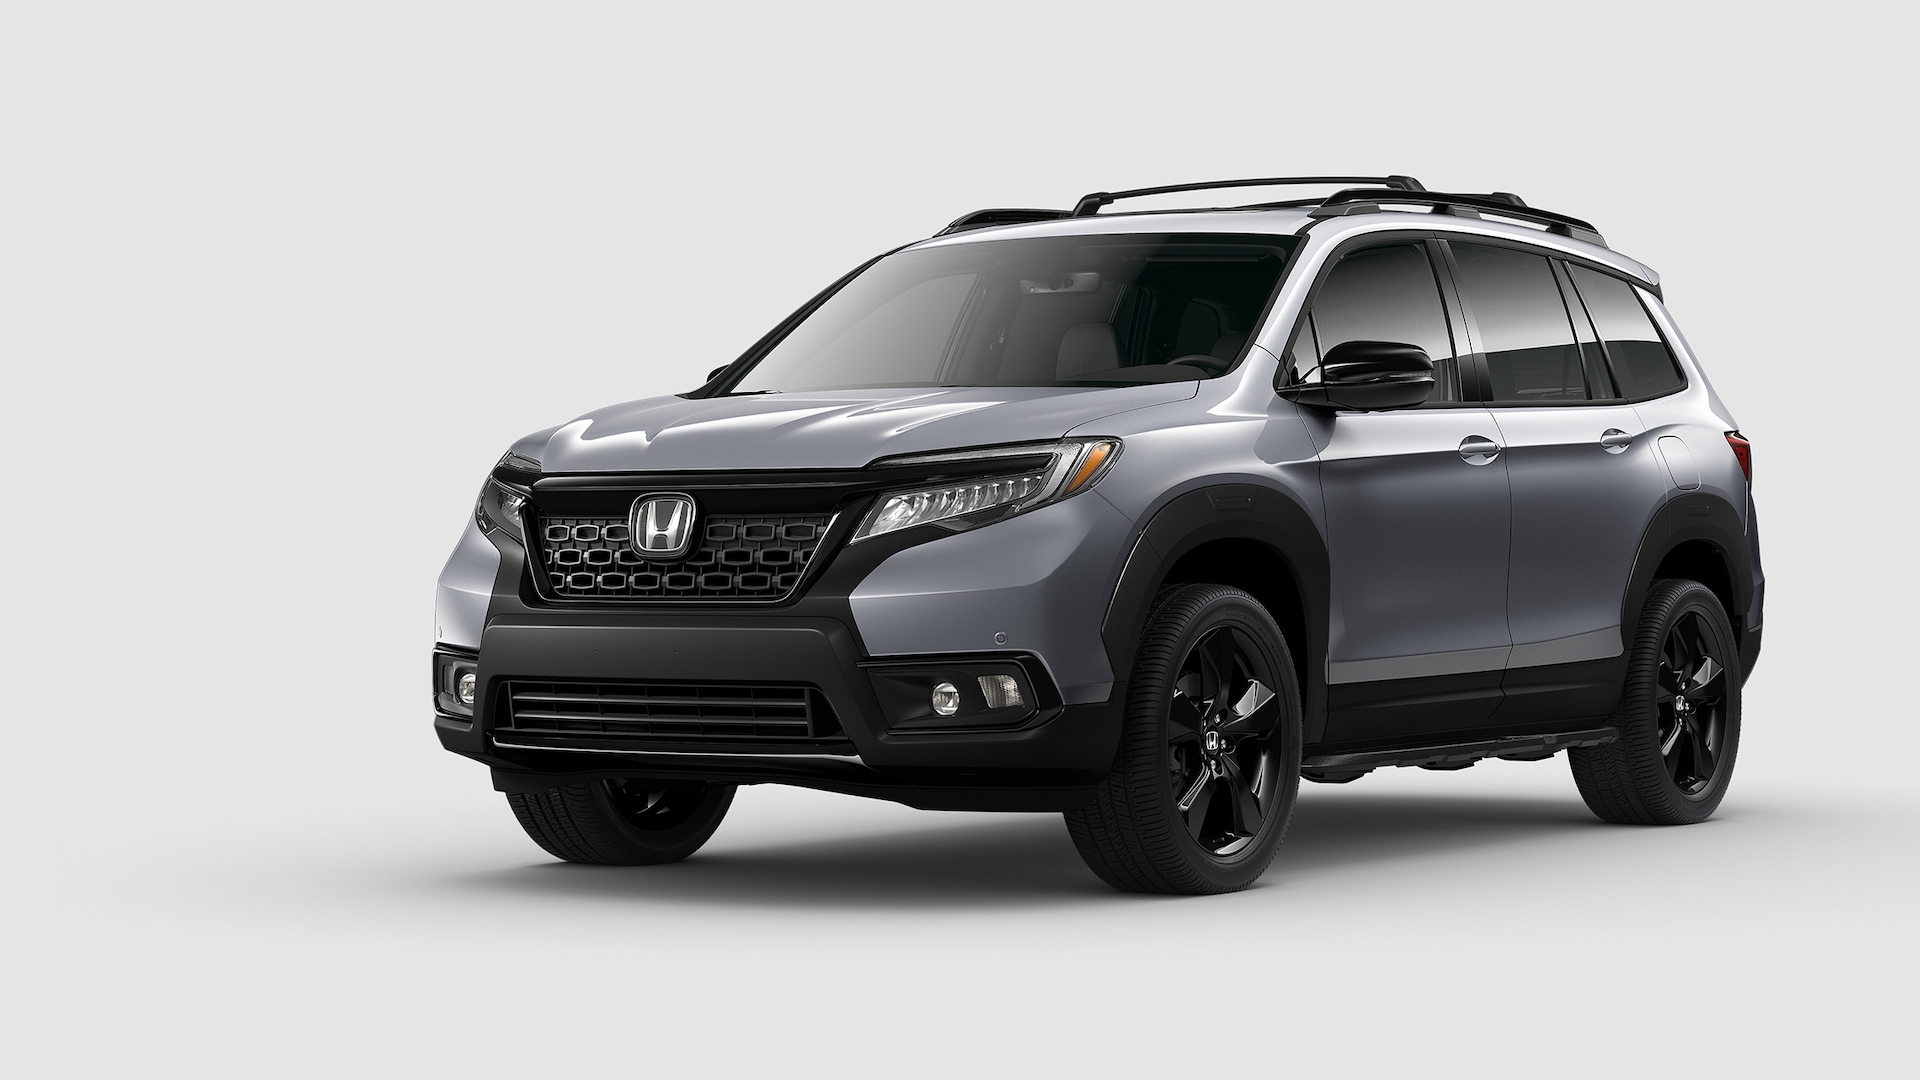 Front driver-side view of the 2021 Honda Passport Elite in Lunar Silver Metallic with Honda Genuine Accessories.